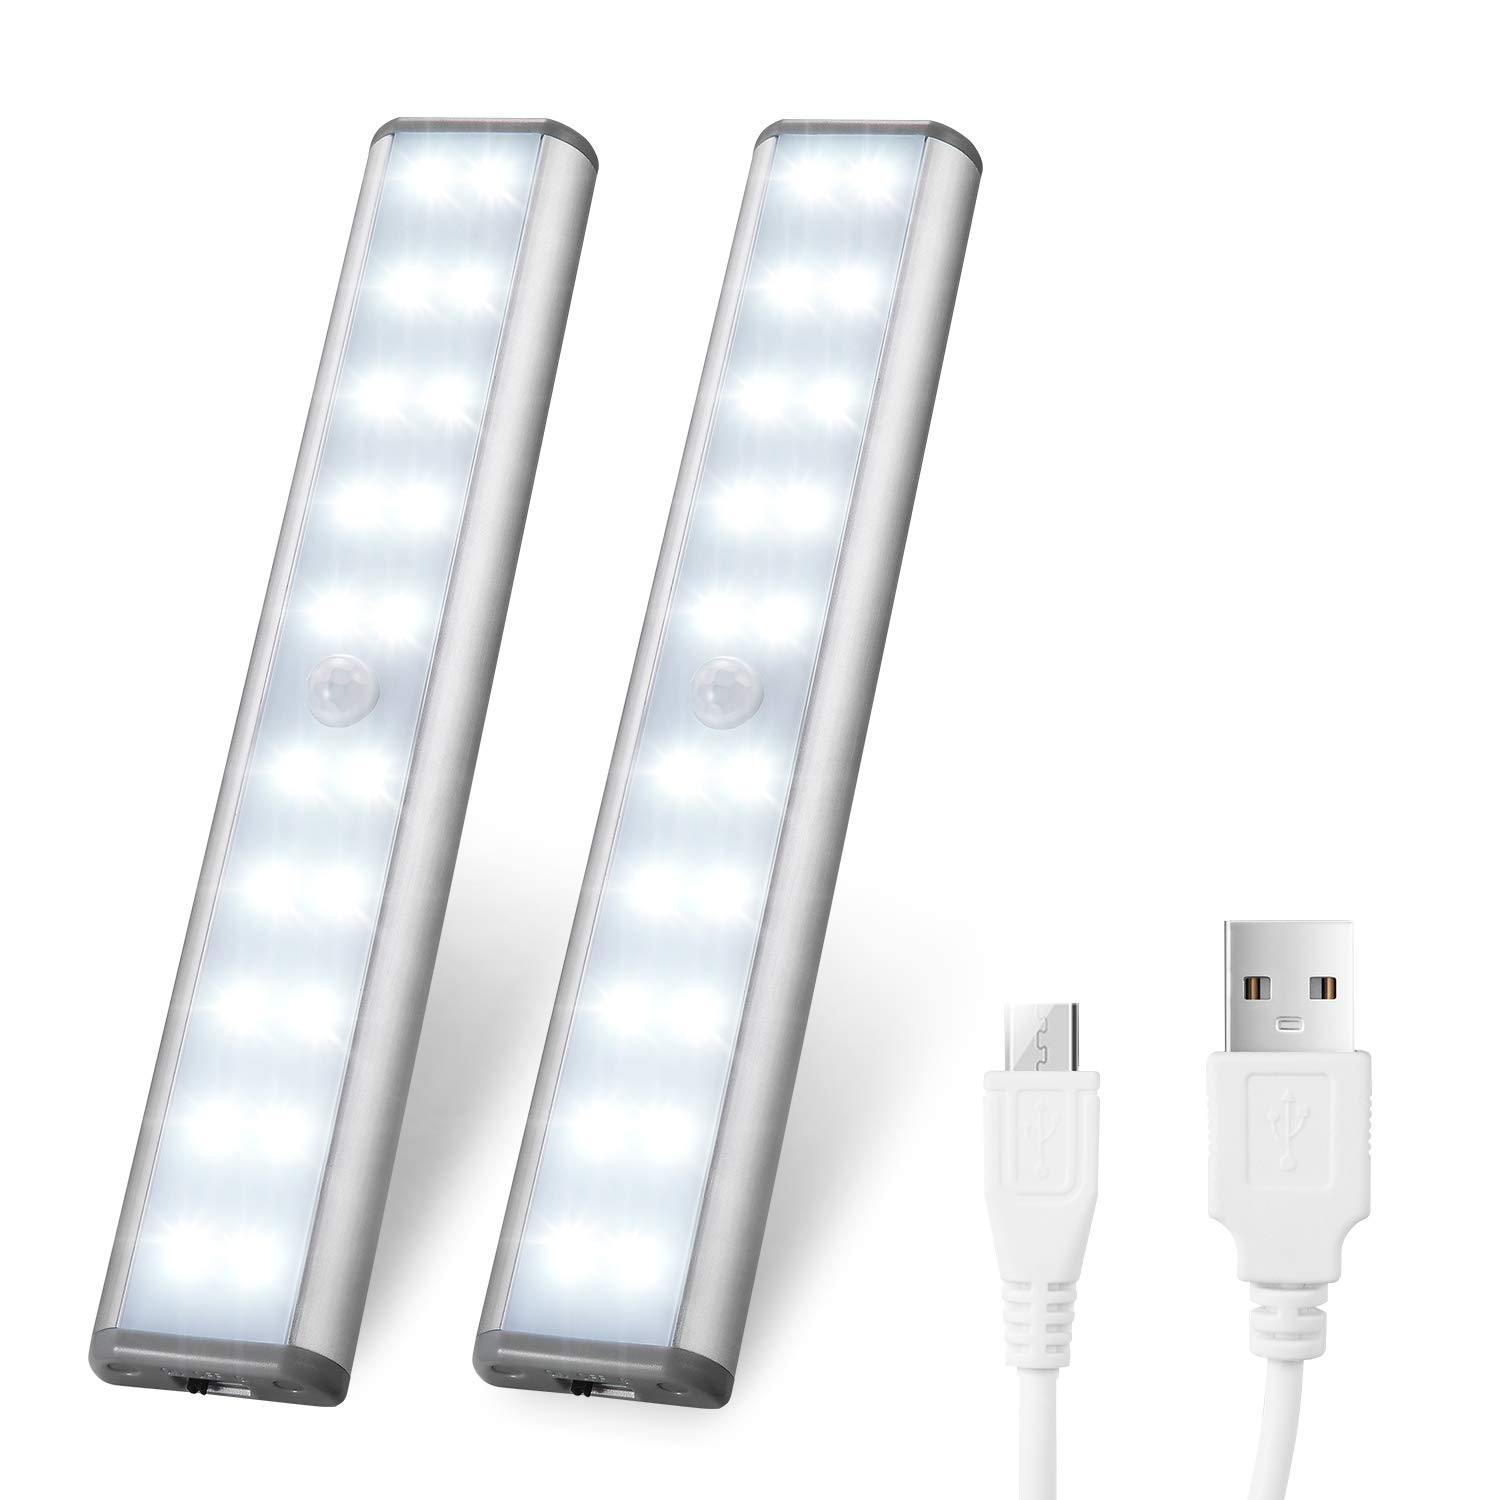 Motion Sensor Cabinet Lights,USB Rechargeable 20 LED Portable Cordless Closet Lighting,Wireless Under Counter Light Bar, Magnetic Removable Stick-On Anywhere for Wardrobe/Cupboard/Stairs (2 Pack)